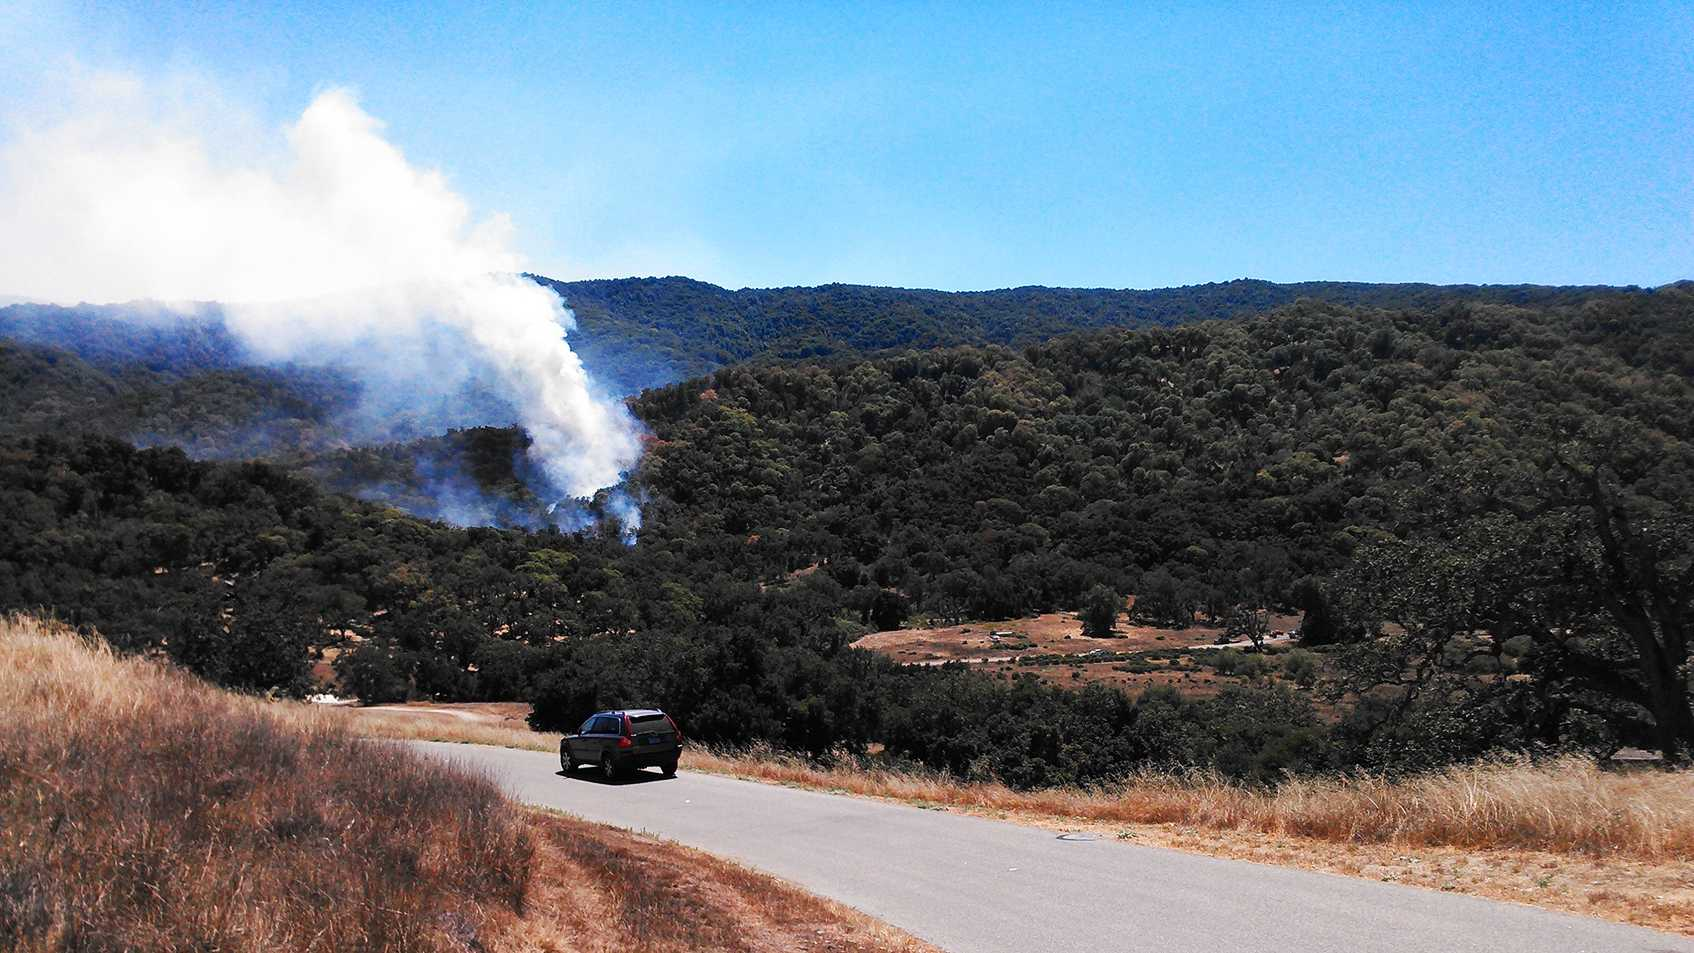 Smoke rises over the south end of Carmel Valley. (Aug. 13, 2014)